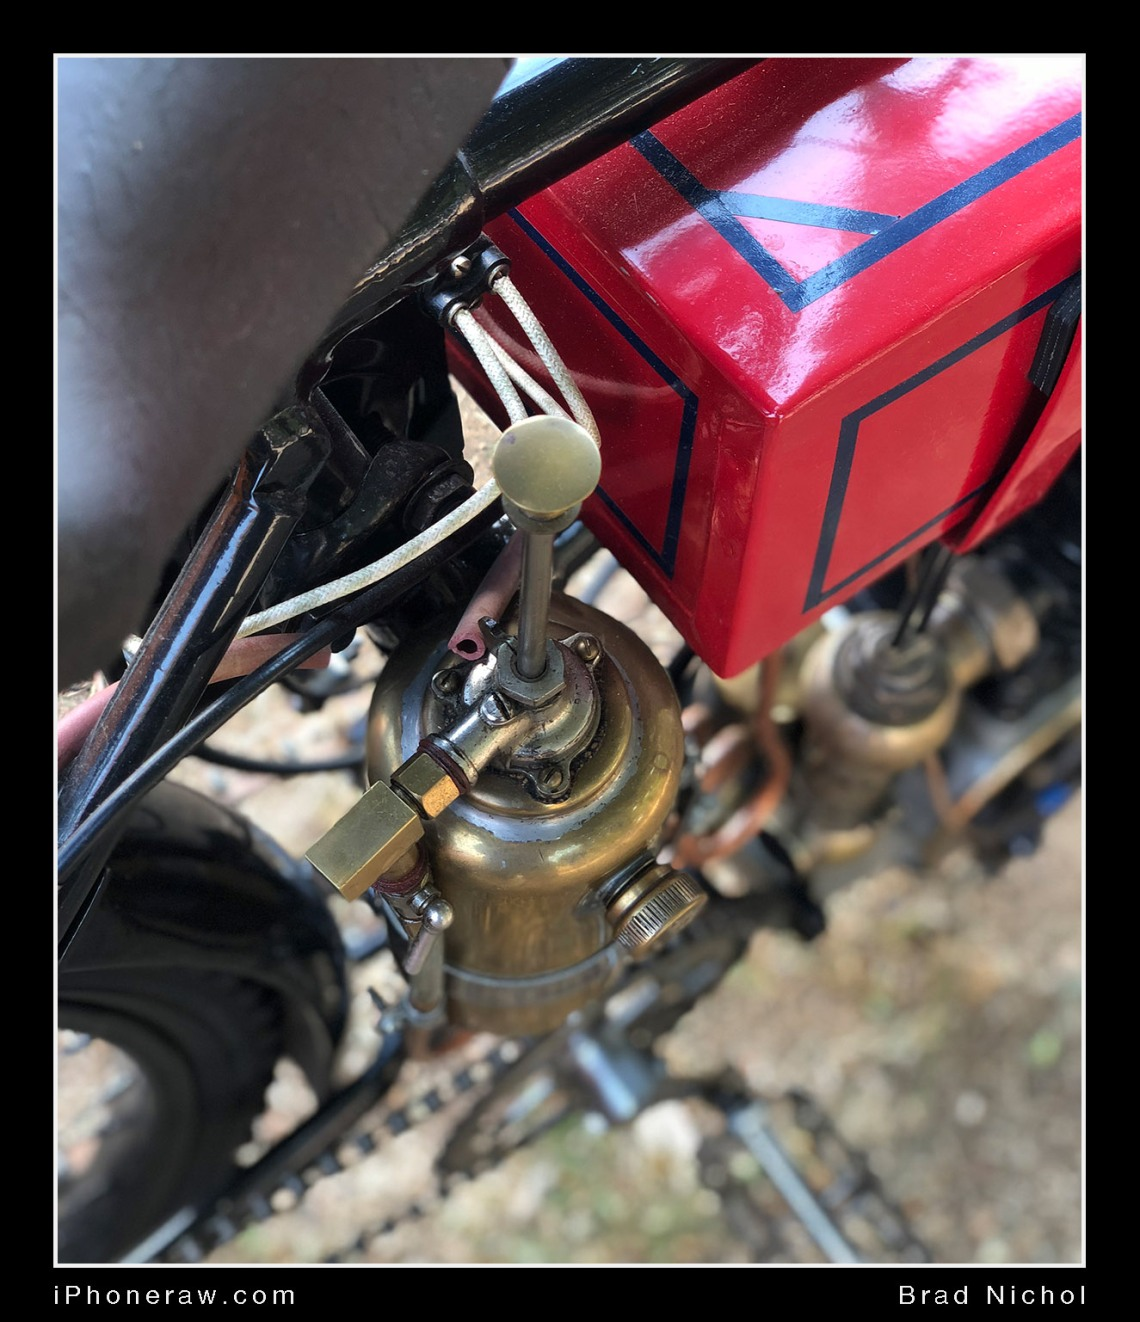 Antique motorcycle hand oil pump, iPhone X, portrait mode.